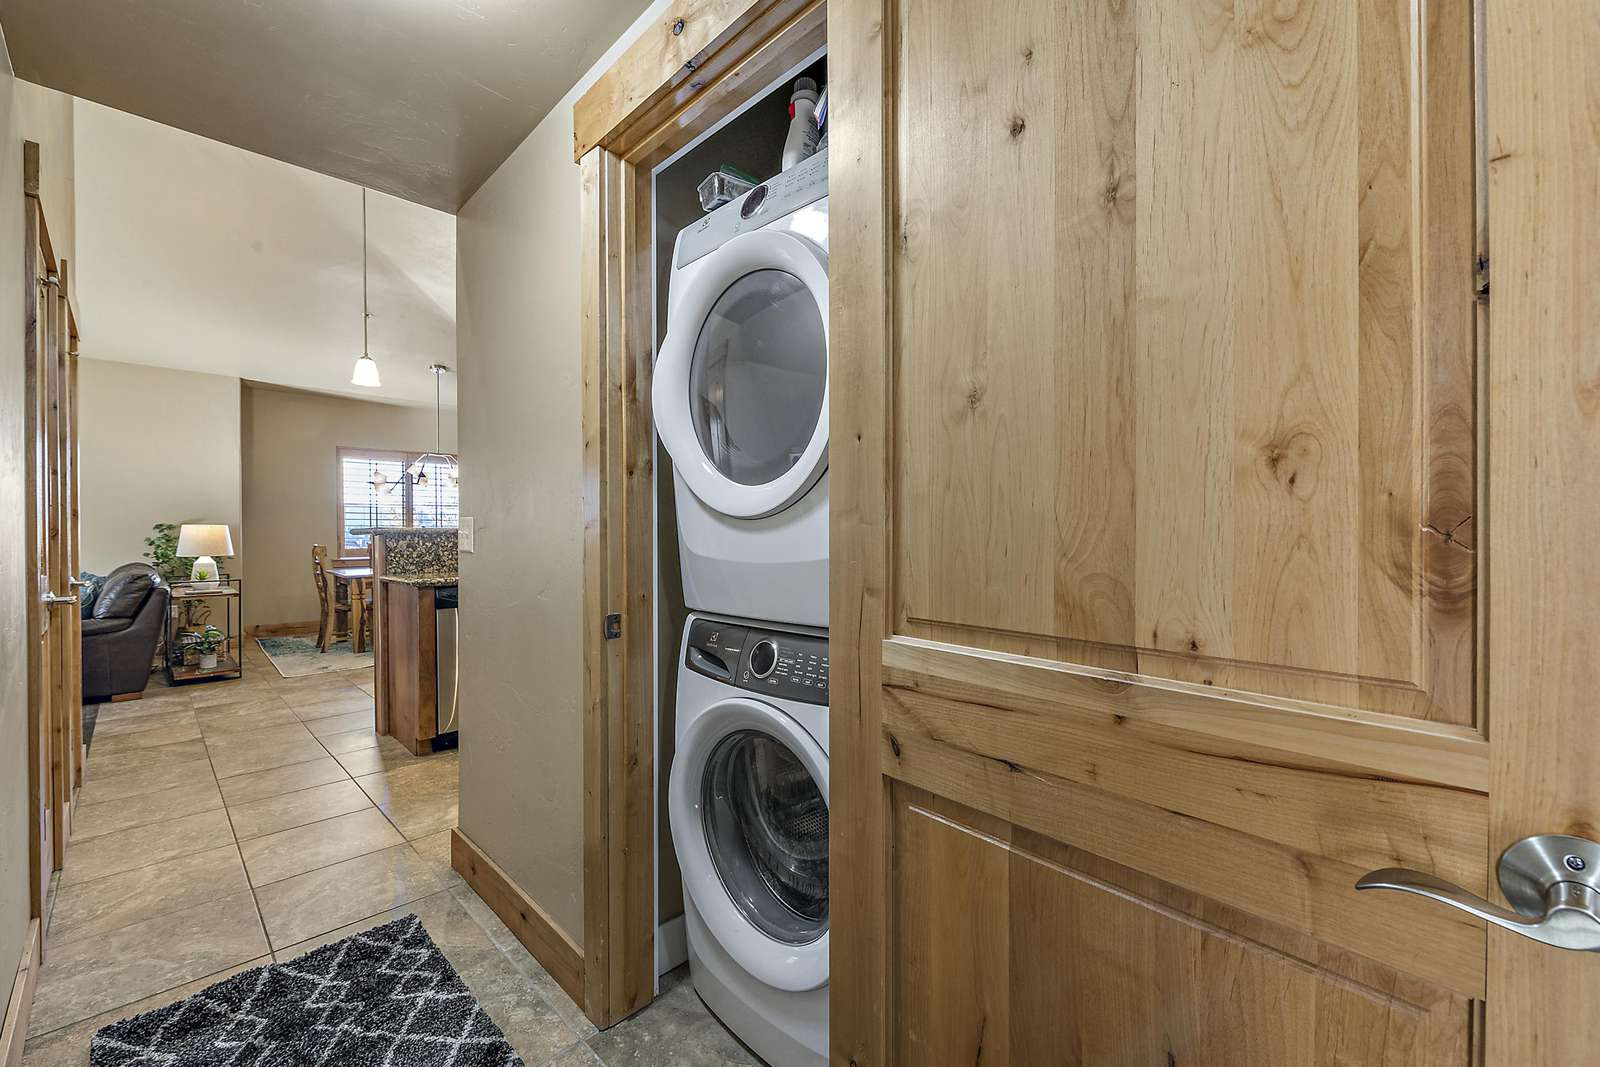 Personal washer and dryer